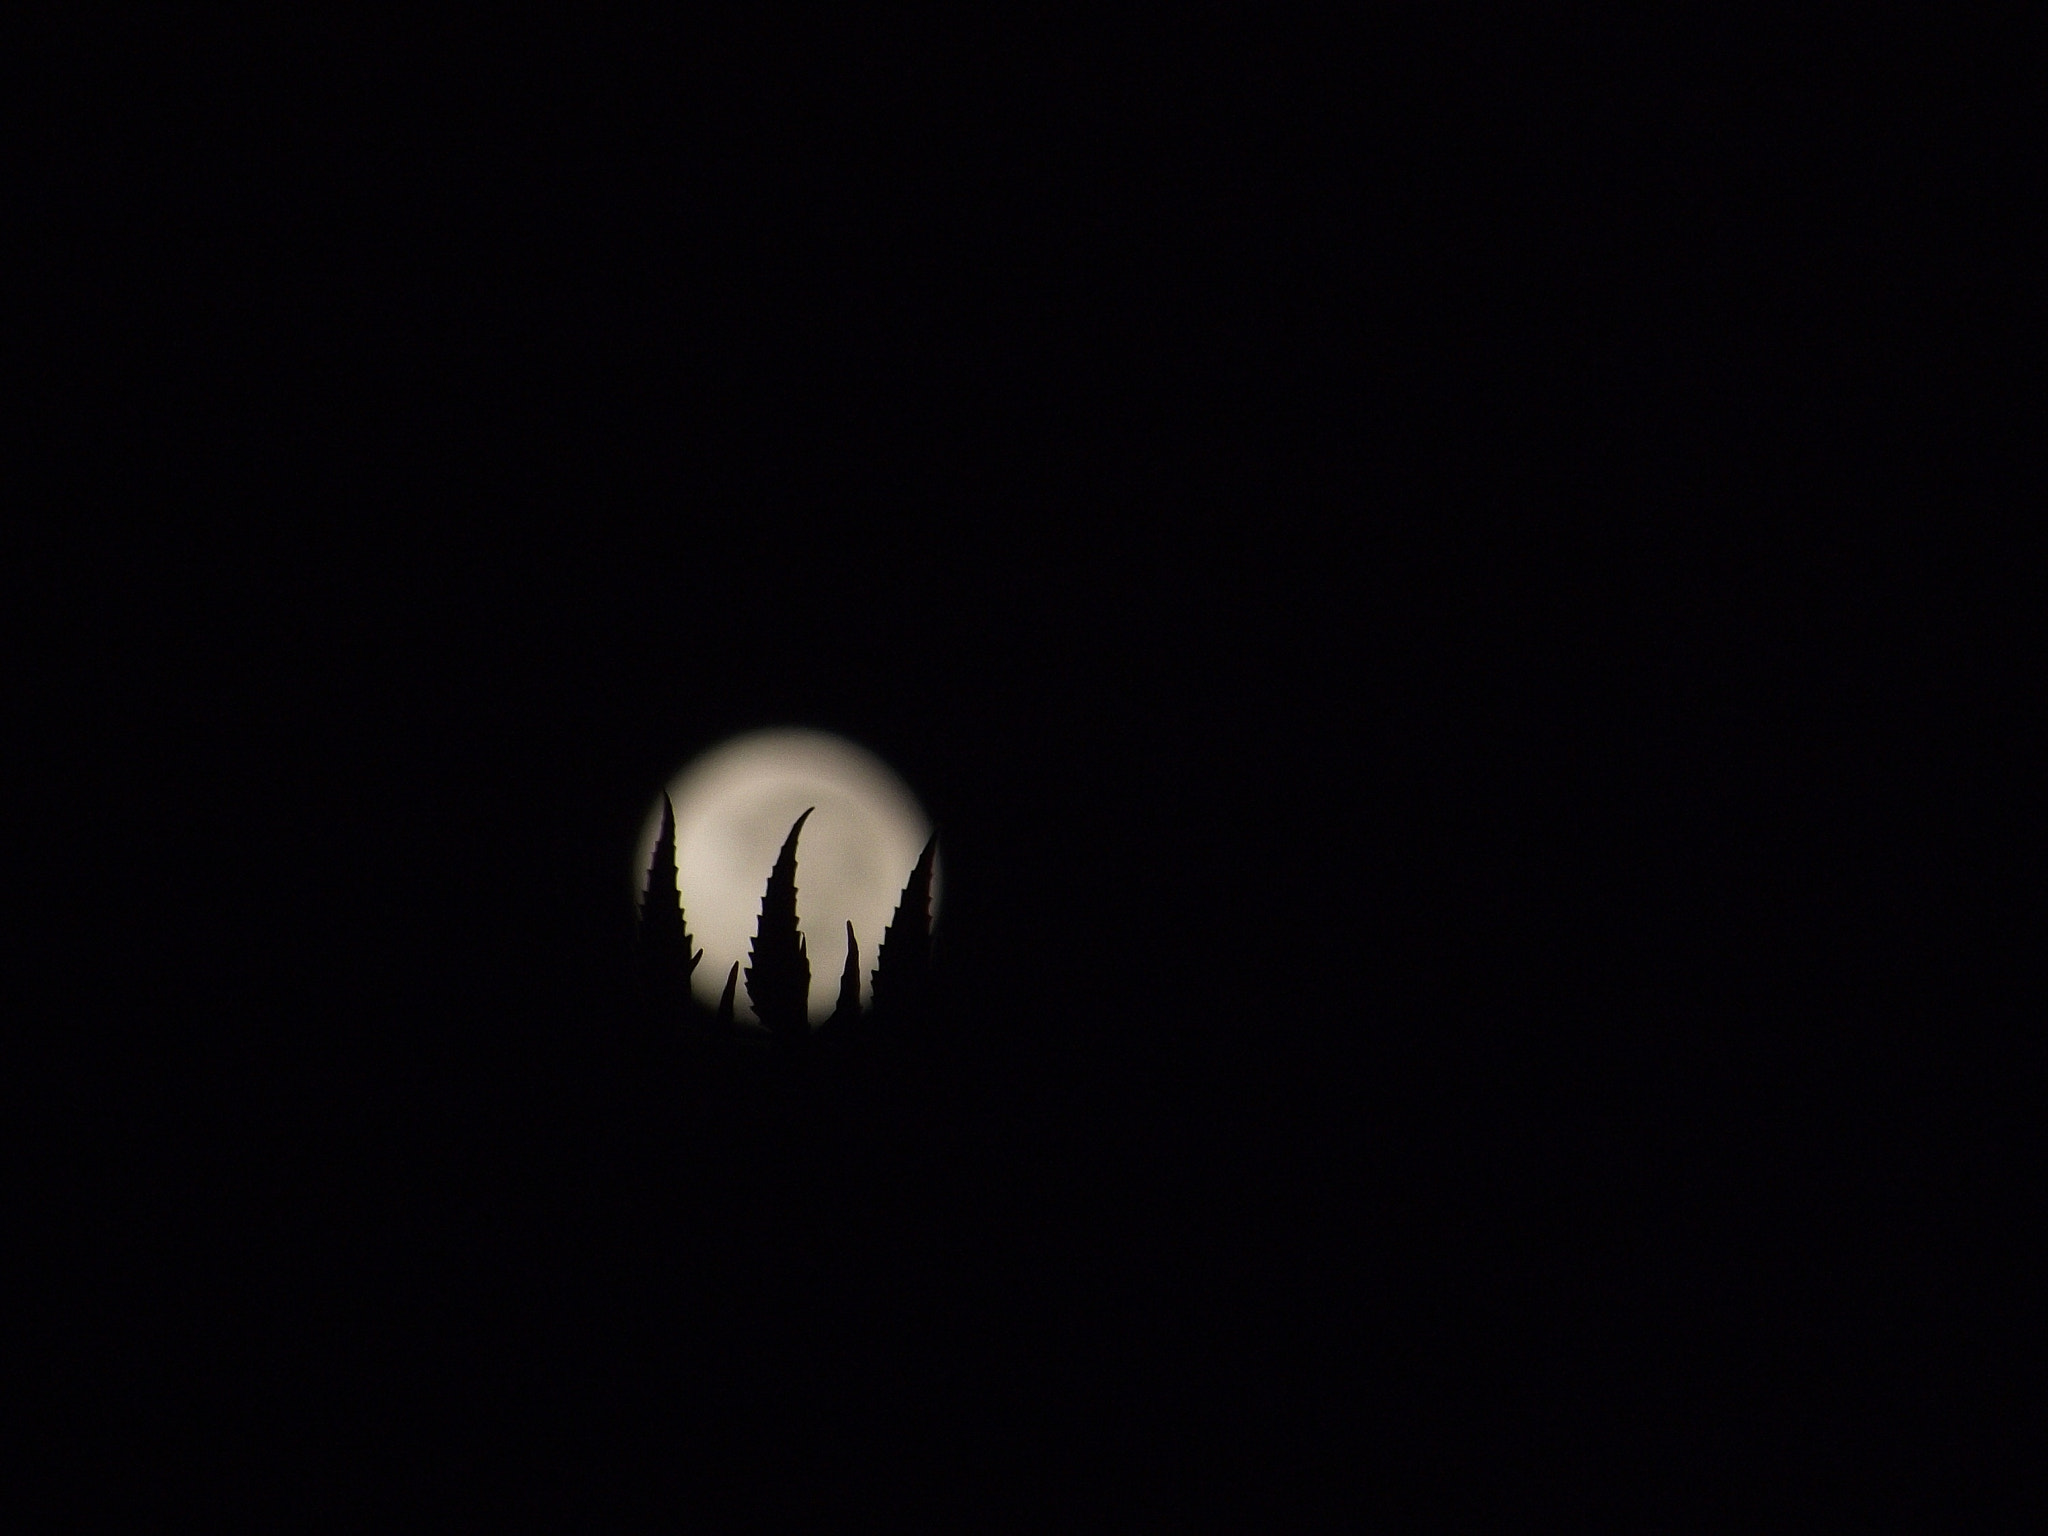 Photograph Moon Silhouette by Pavan Parikh on 500px